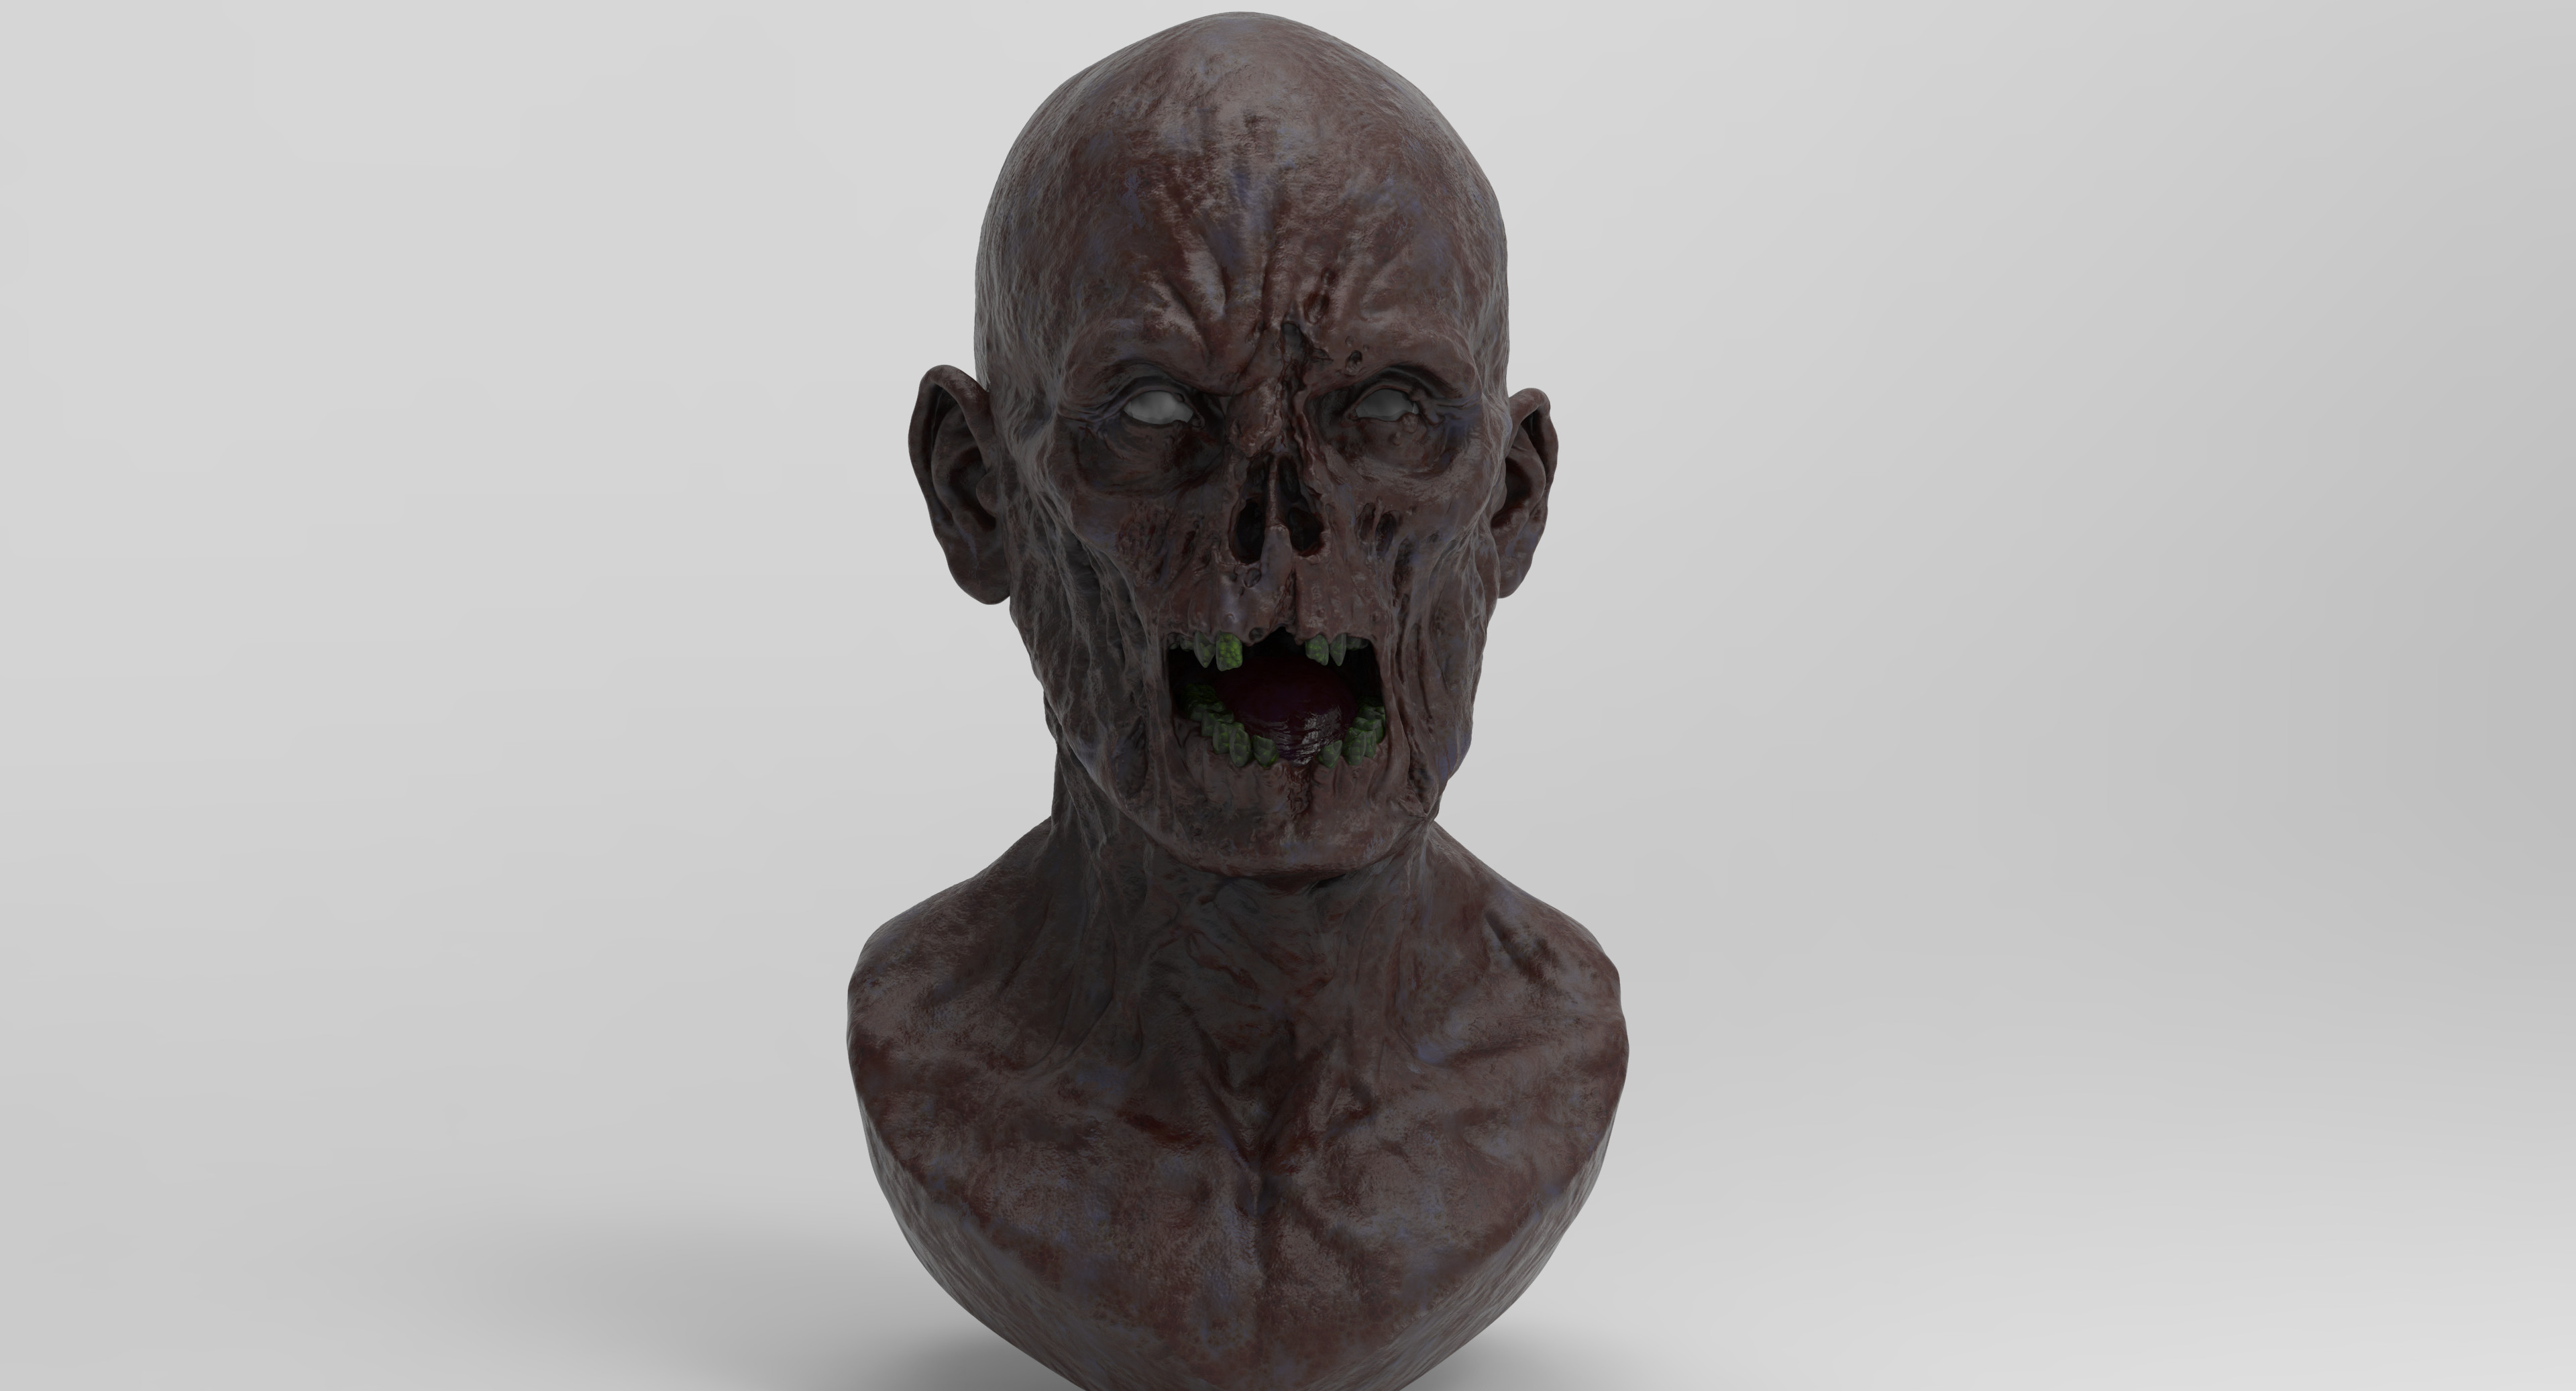 3D render of the female ghost.